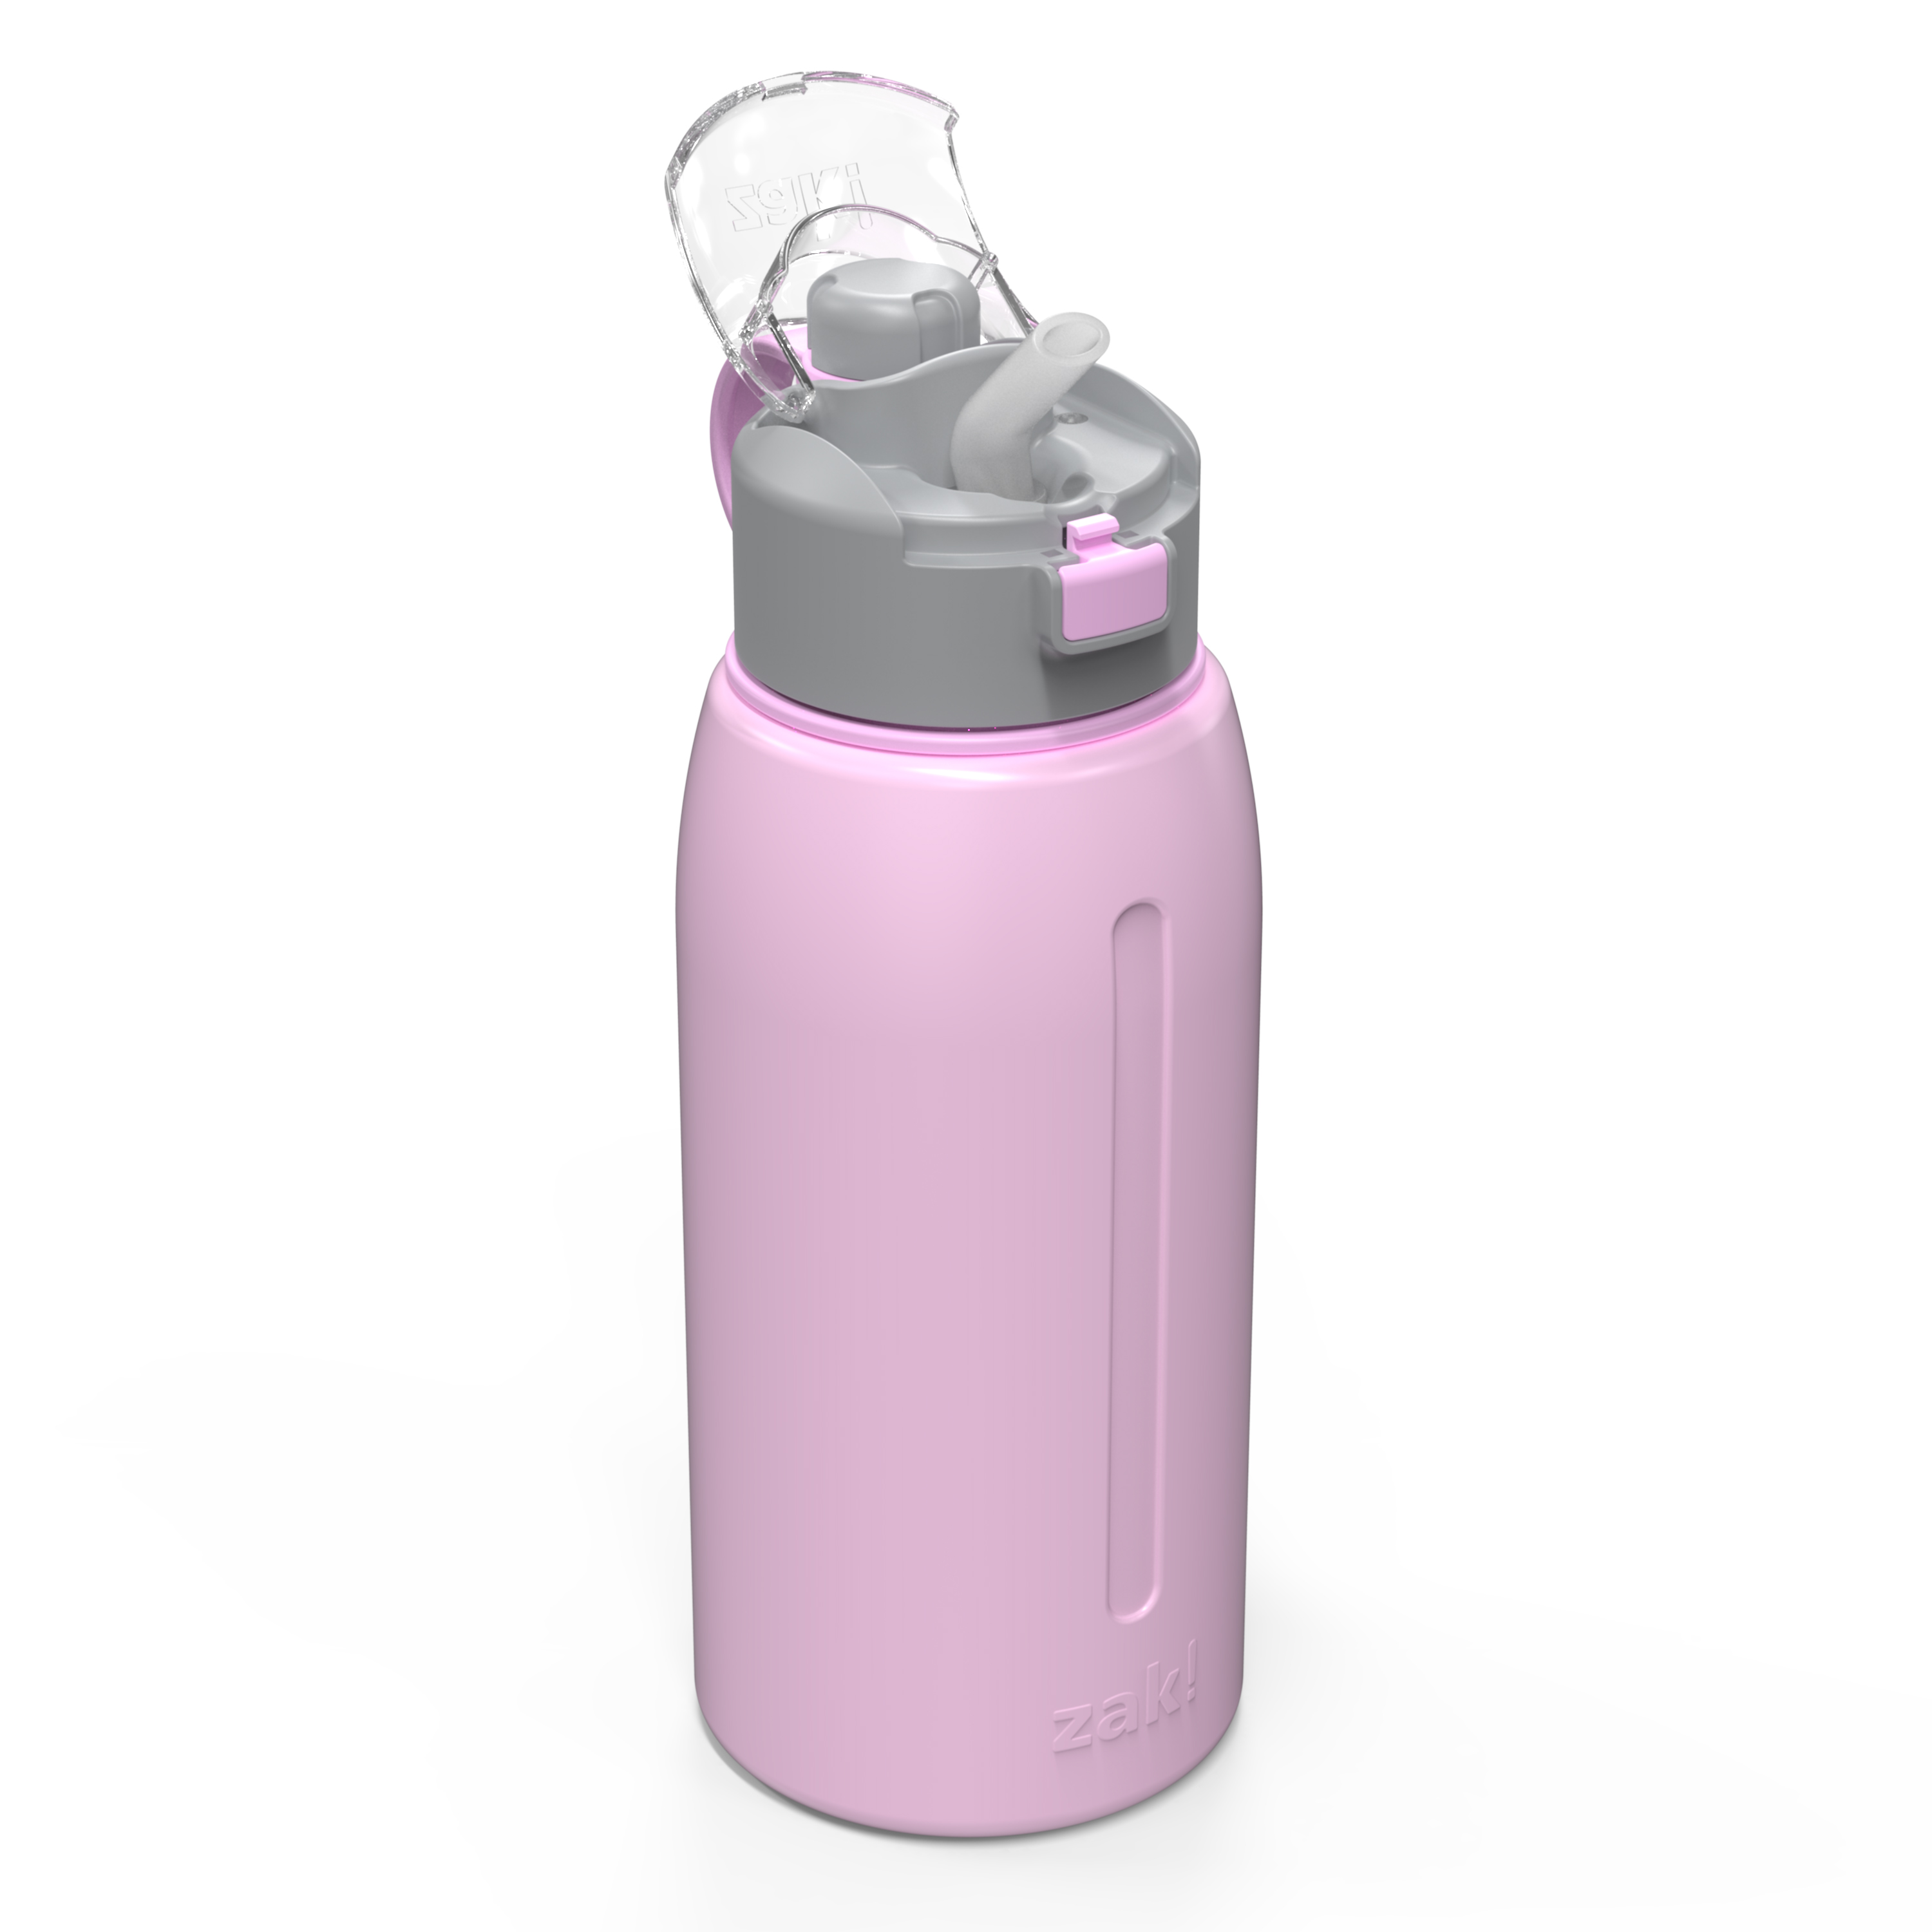 Genesis 32 ounce Vacuum Insulated Stainless Steel Tumbler, Lilac slideshow image 2